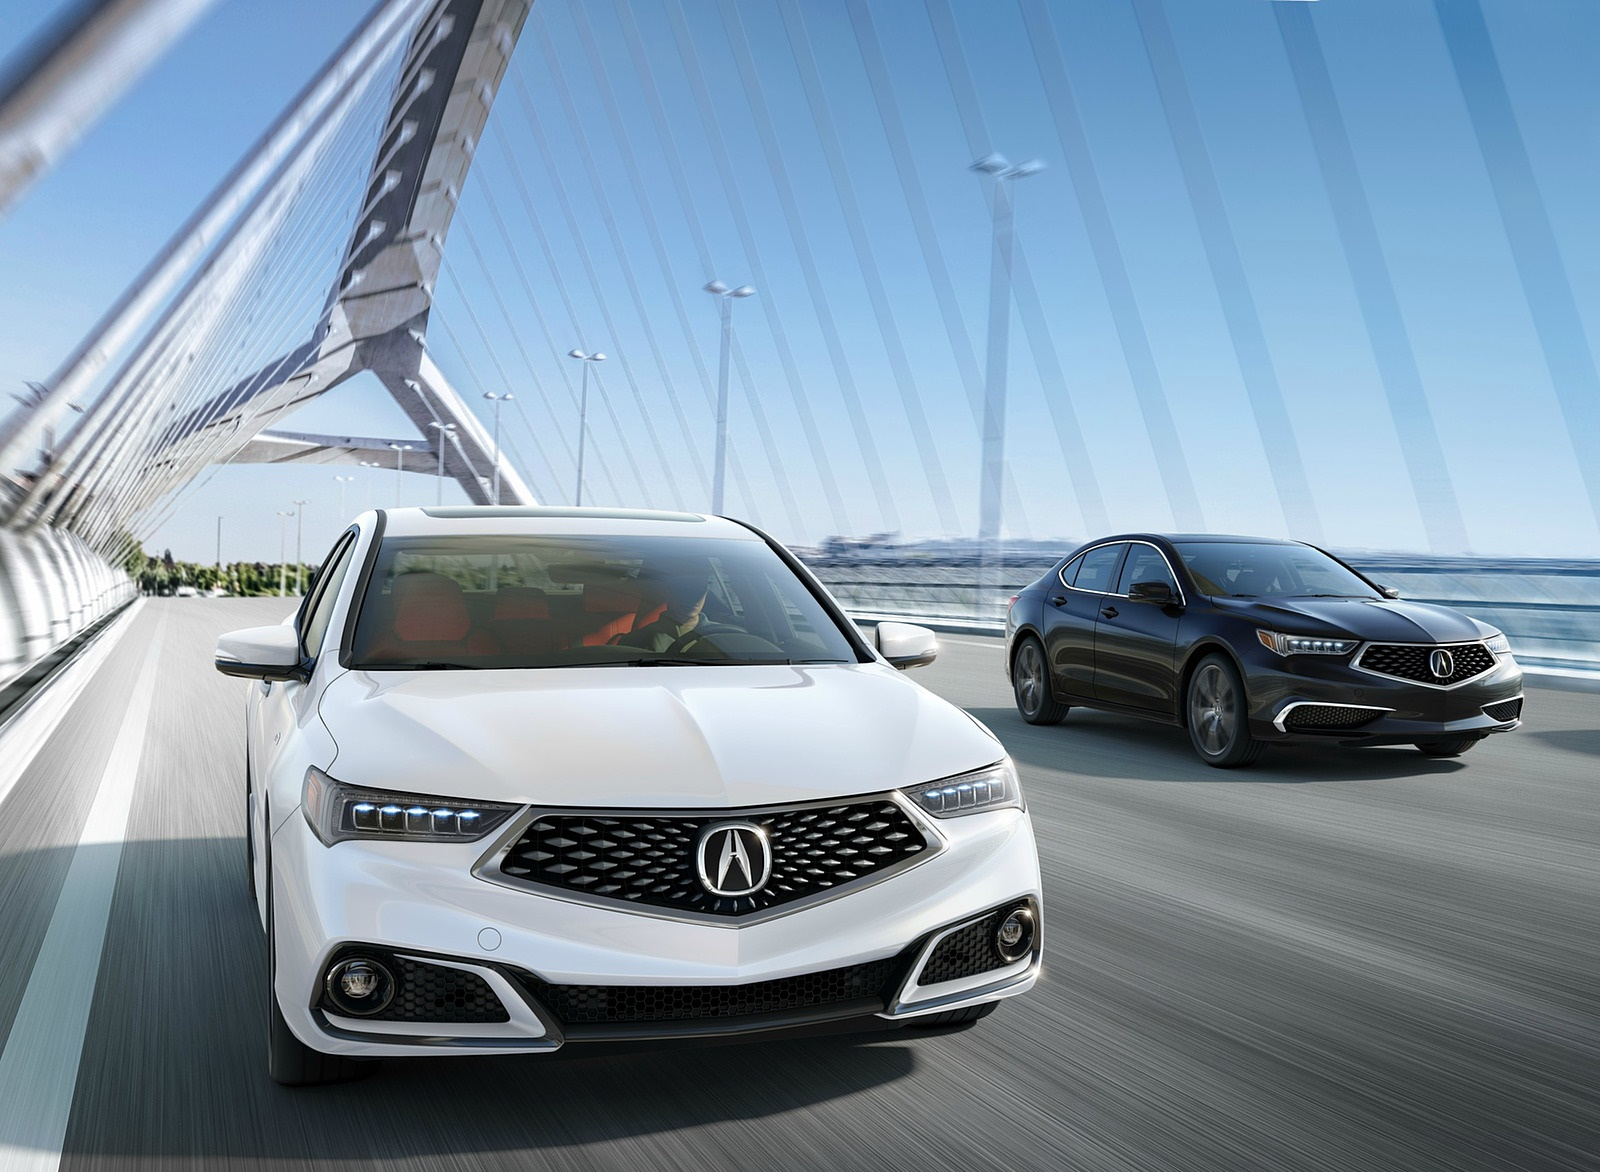 2019 Acura TLX Wallpapers 54 HD Images   NewCarCars 1600x1172